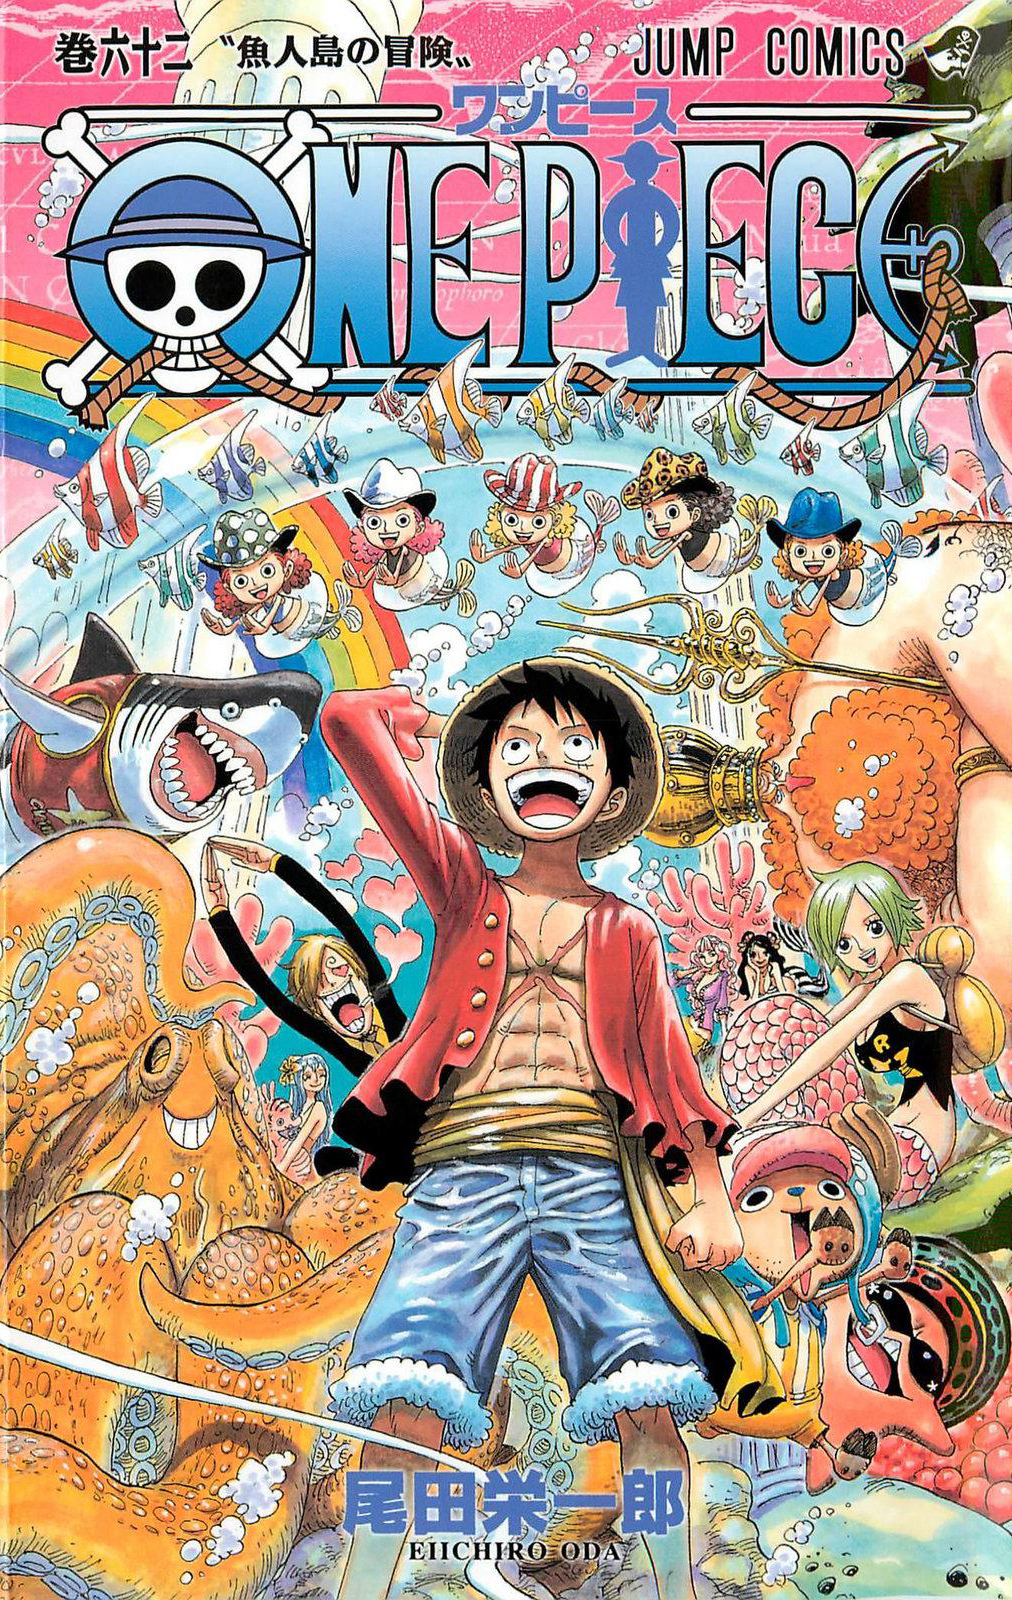 D Exhibition One Piece : Tome one piece encyclopédie fandom powered by wikia